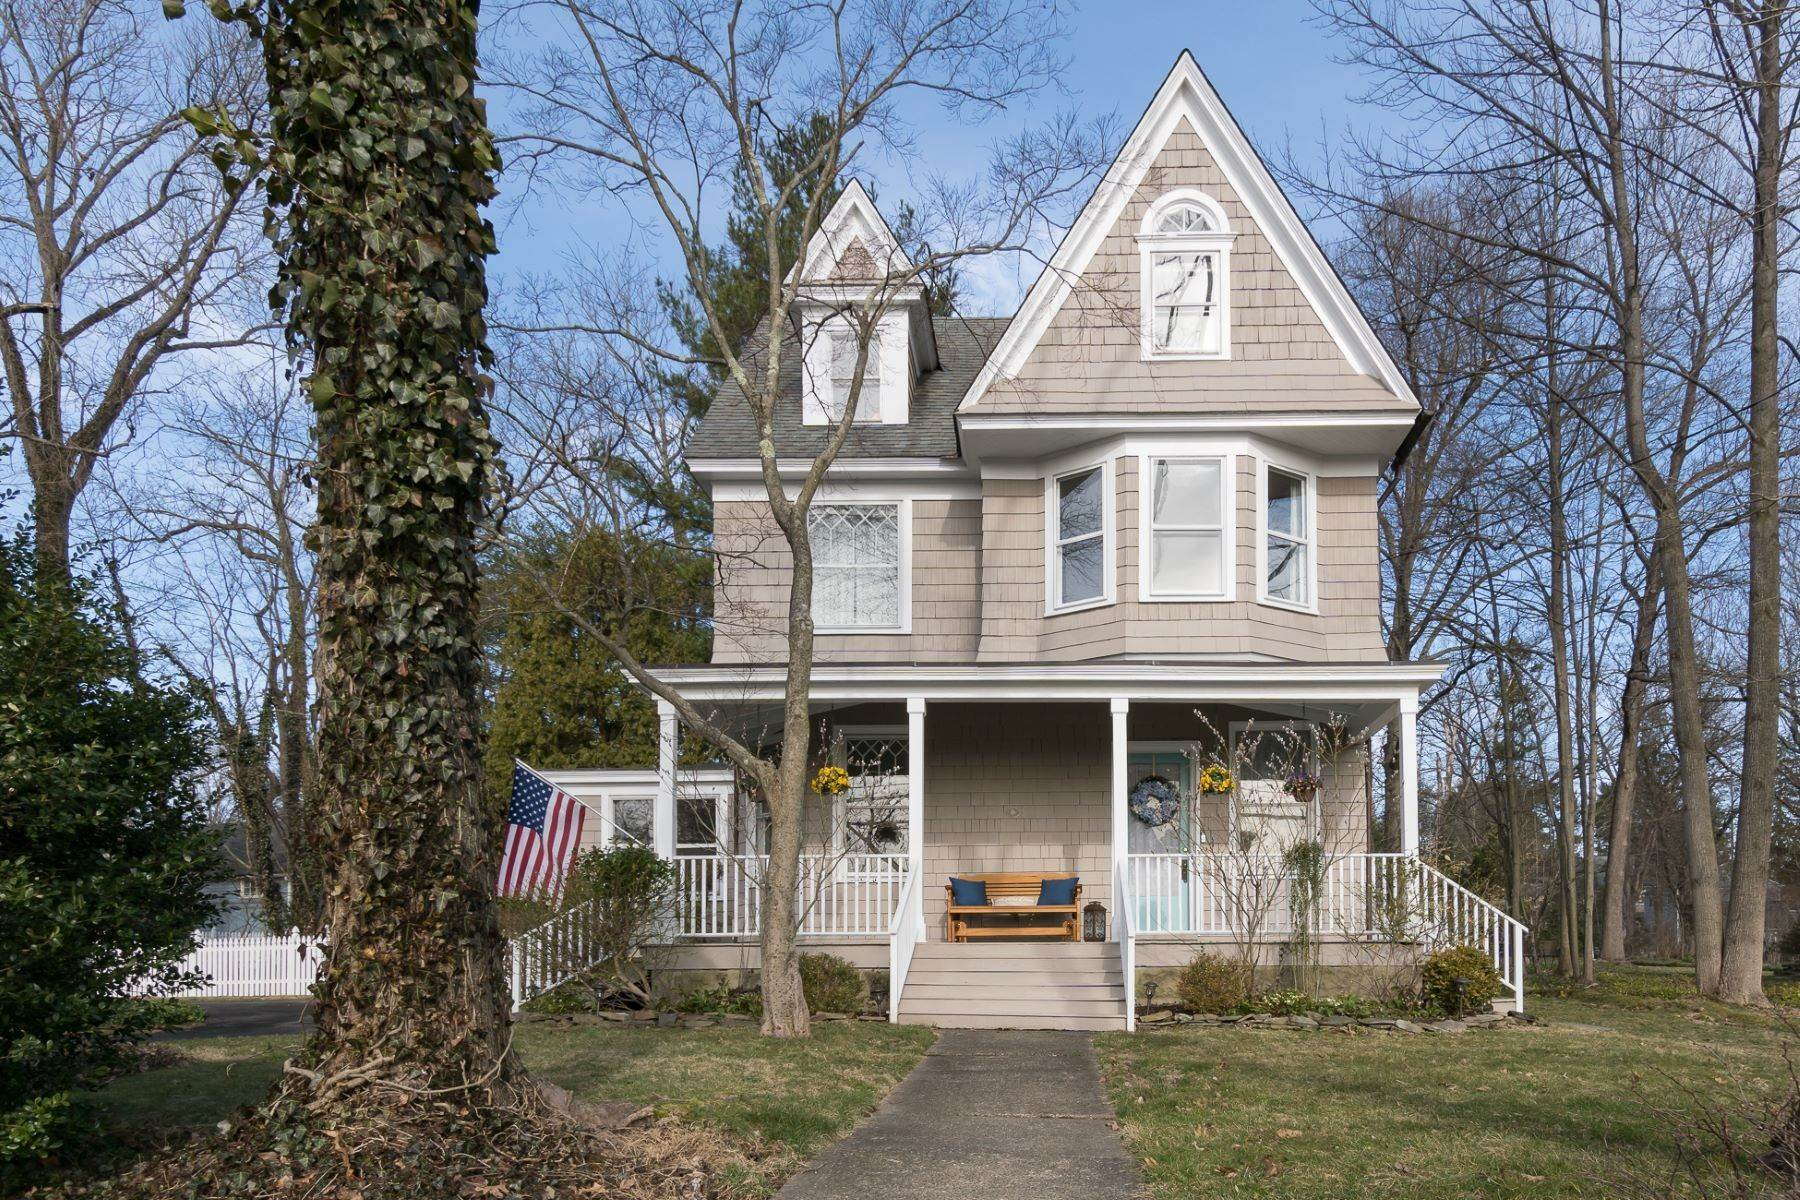 Single Family Homes for Sale at Village Victorian with a Lofty, Open Layout 2909 Main Street Lawrenceville, New Jersey 08648 United States